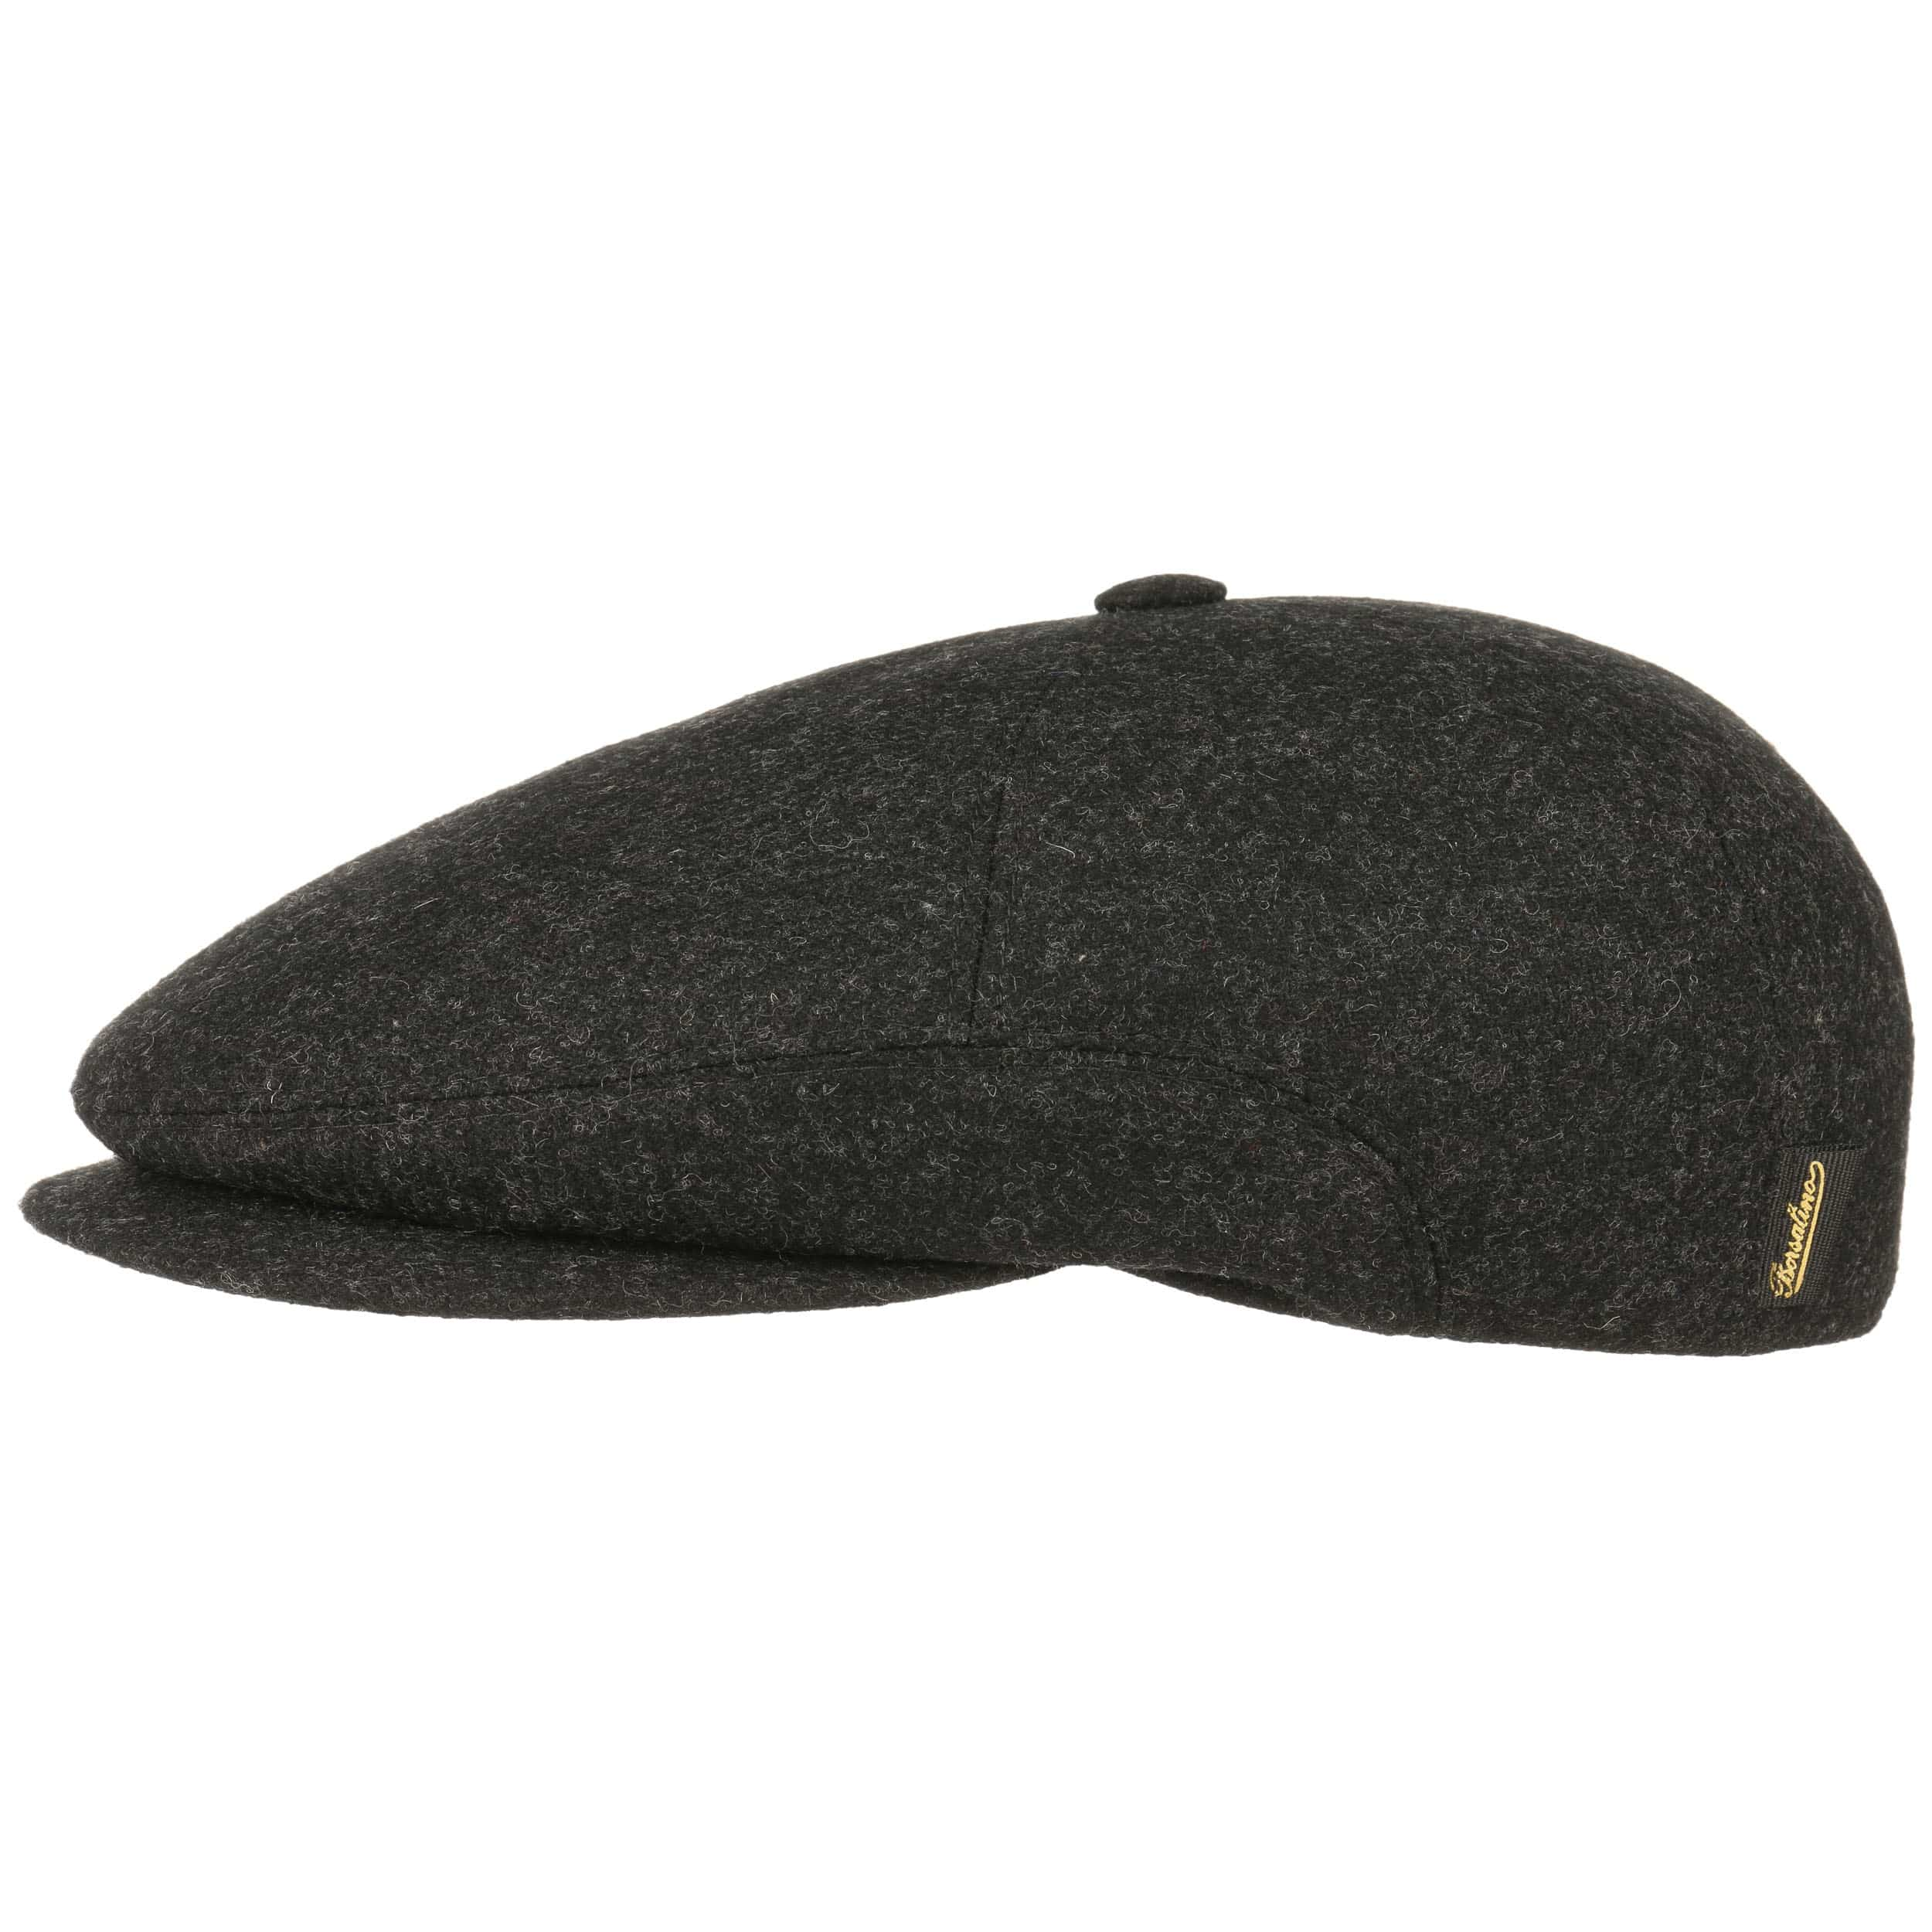 ... Vincent Wool Flat Cap by Borsalino - anthracite 1 ... de25545fb7f6